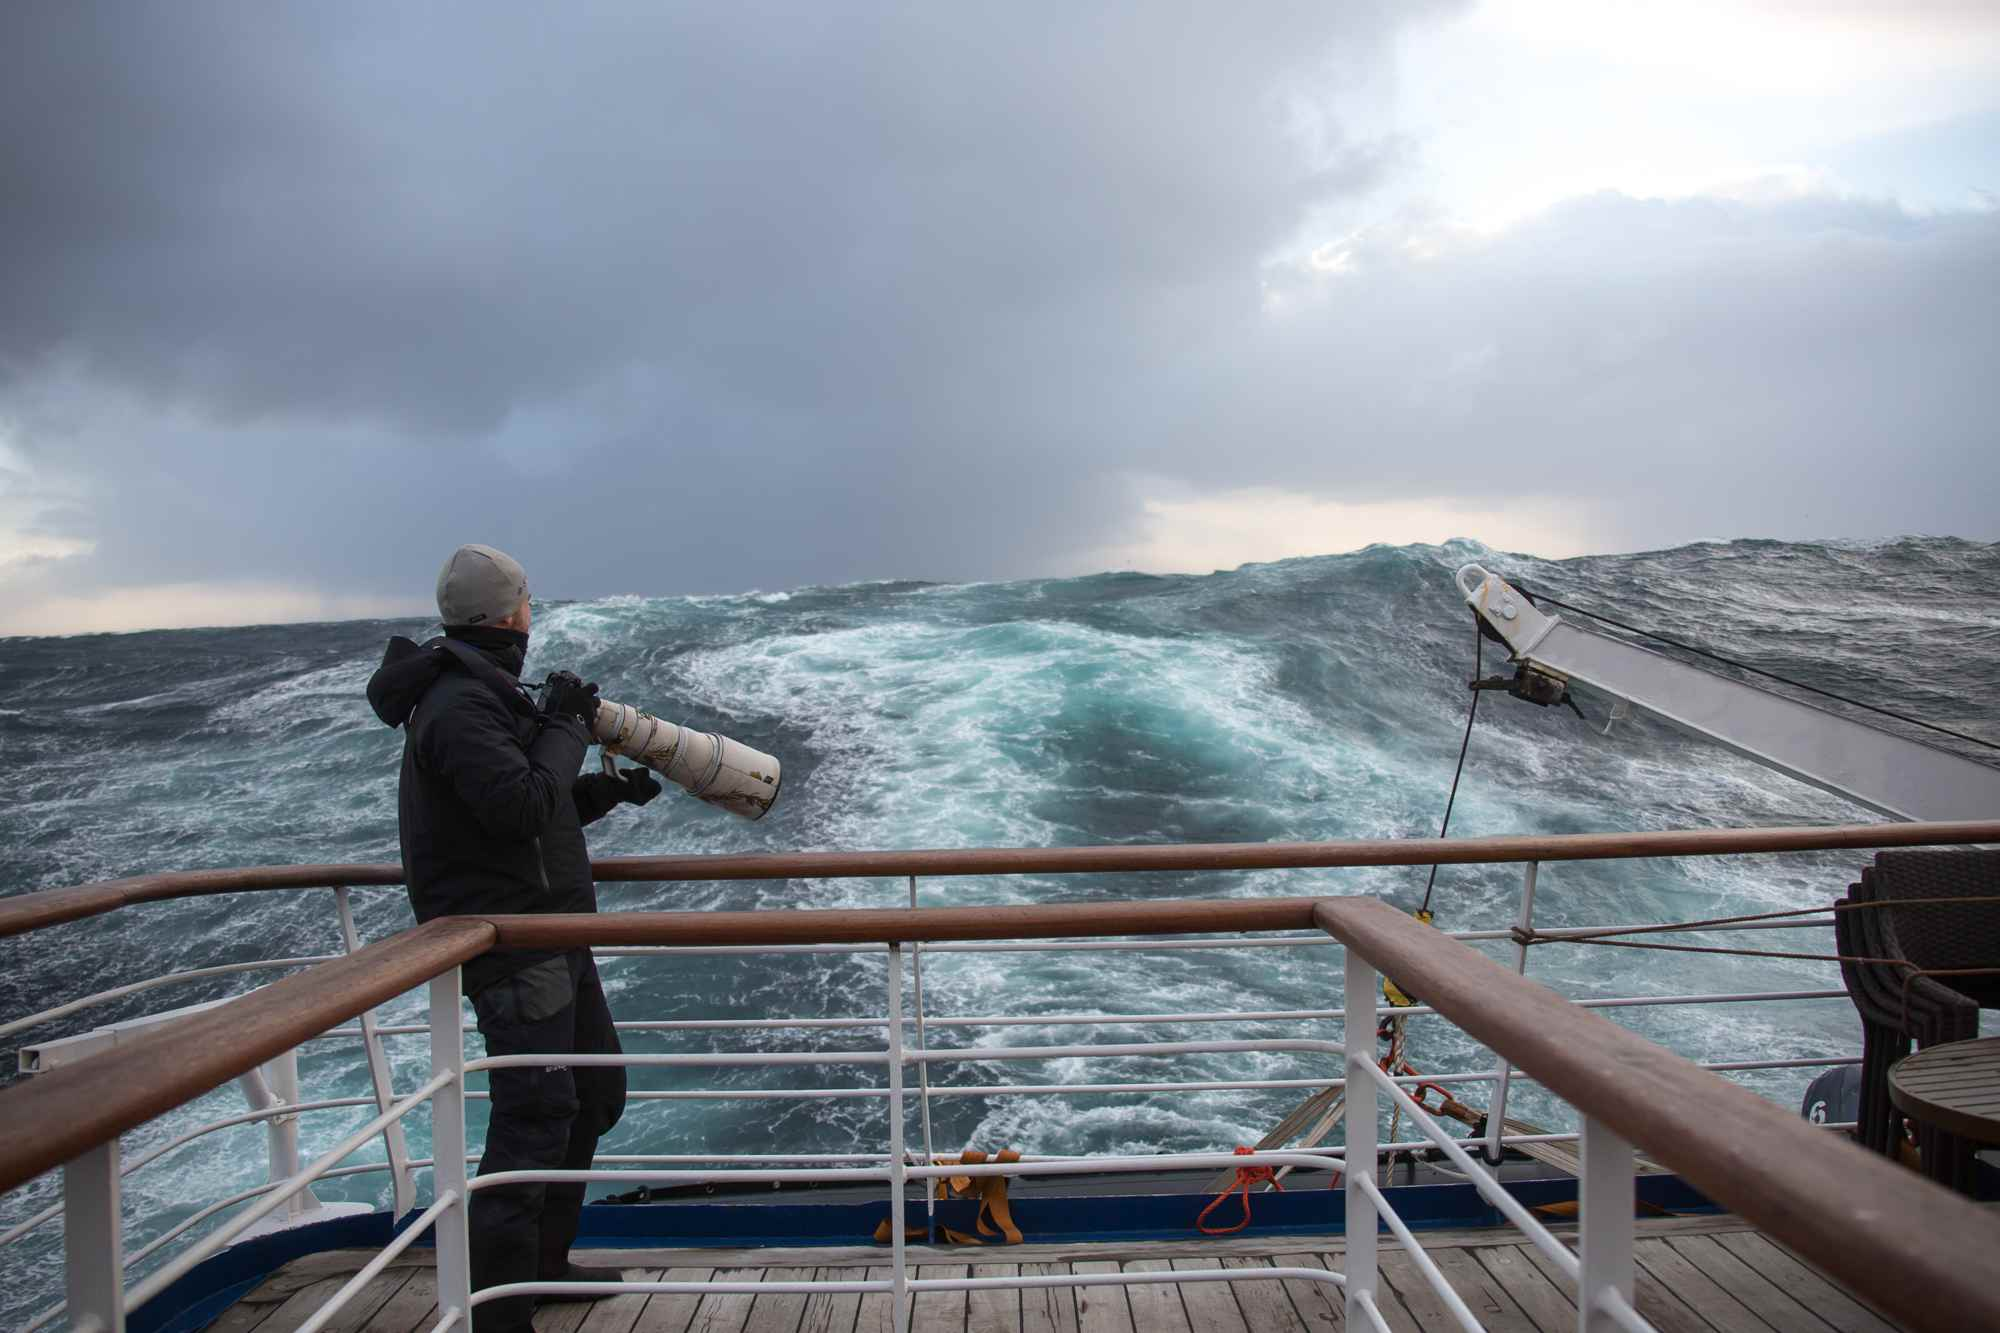 Taking photos in rough seas can be interesting